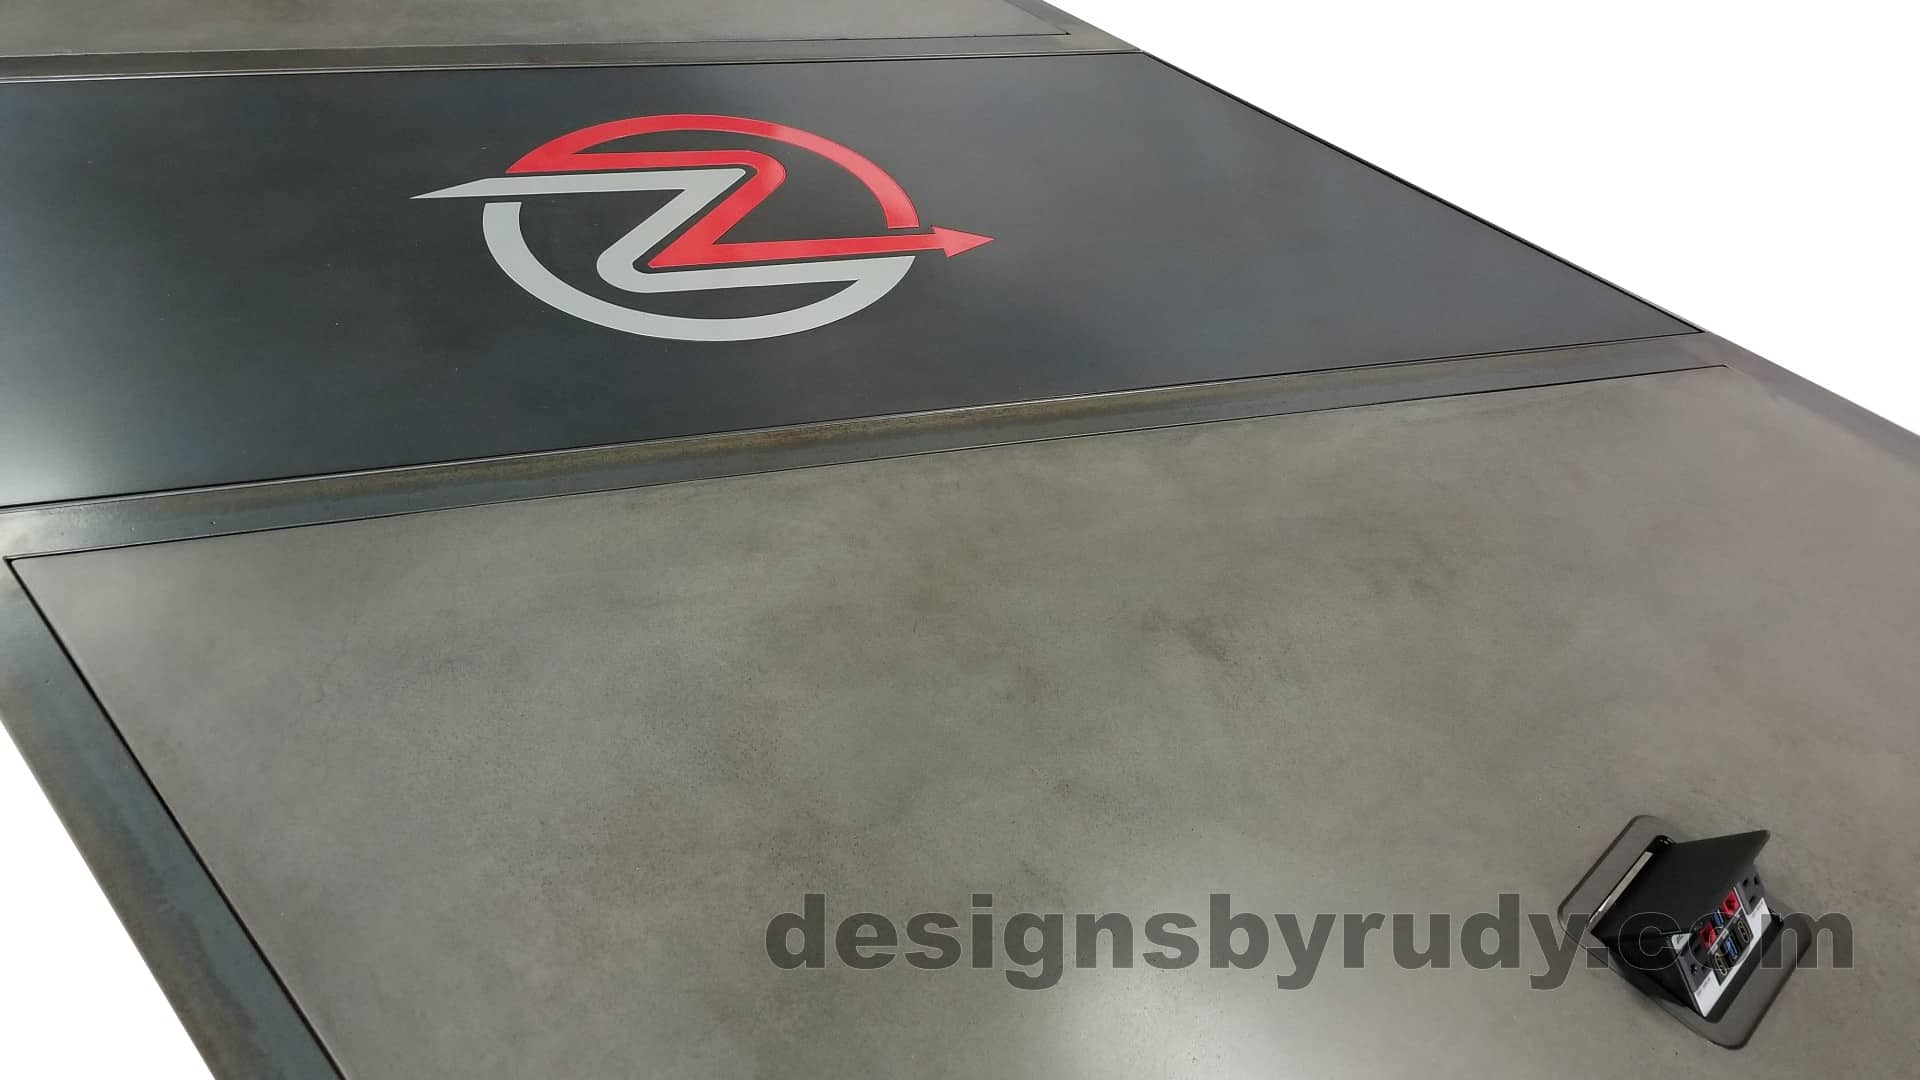 8 Steel and concrete conference table, design and fabrication by Designs by Rudy, low angle top view